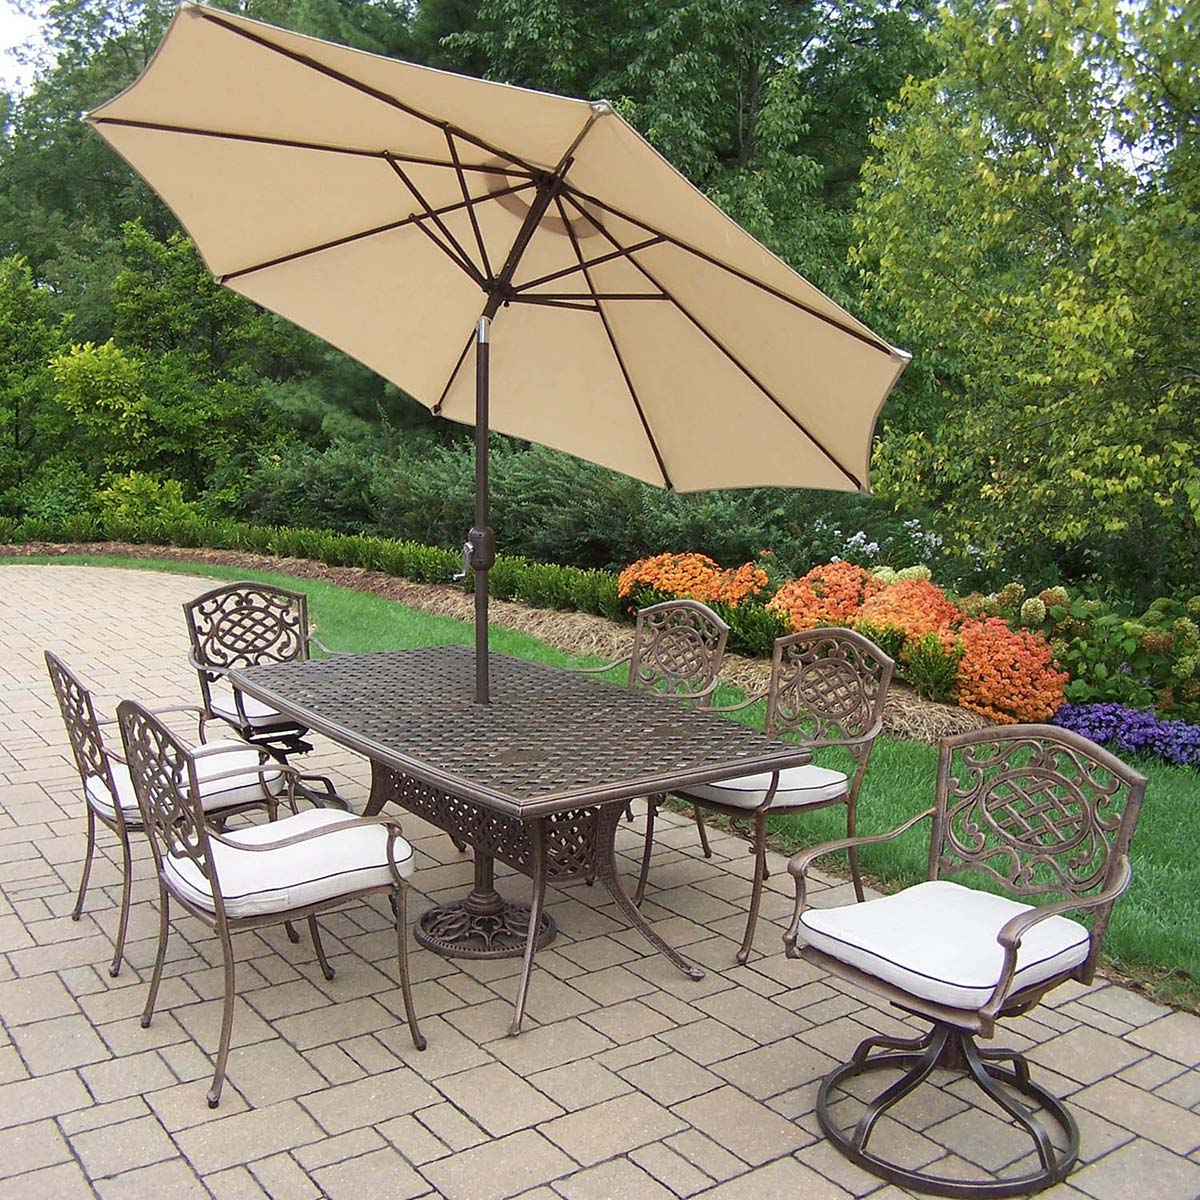 Affordable Mississippi Set Table Chairs Umbrella Rockers Product Photo